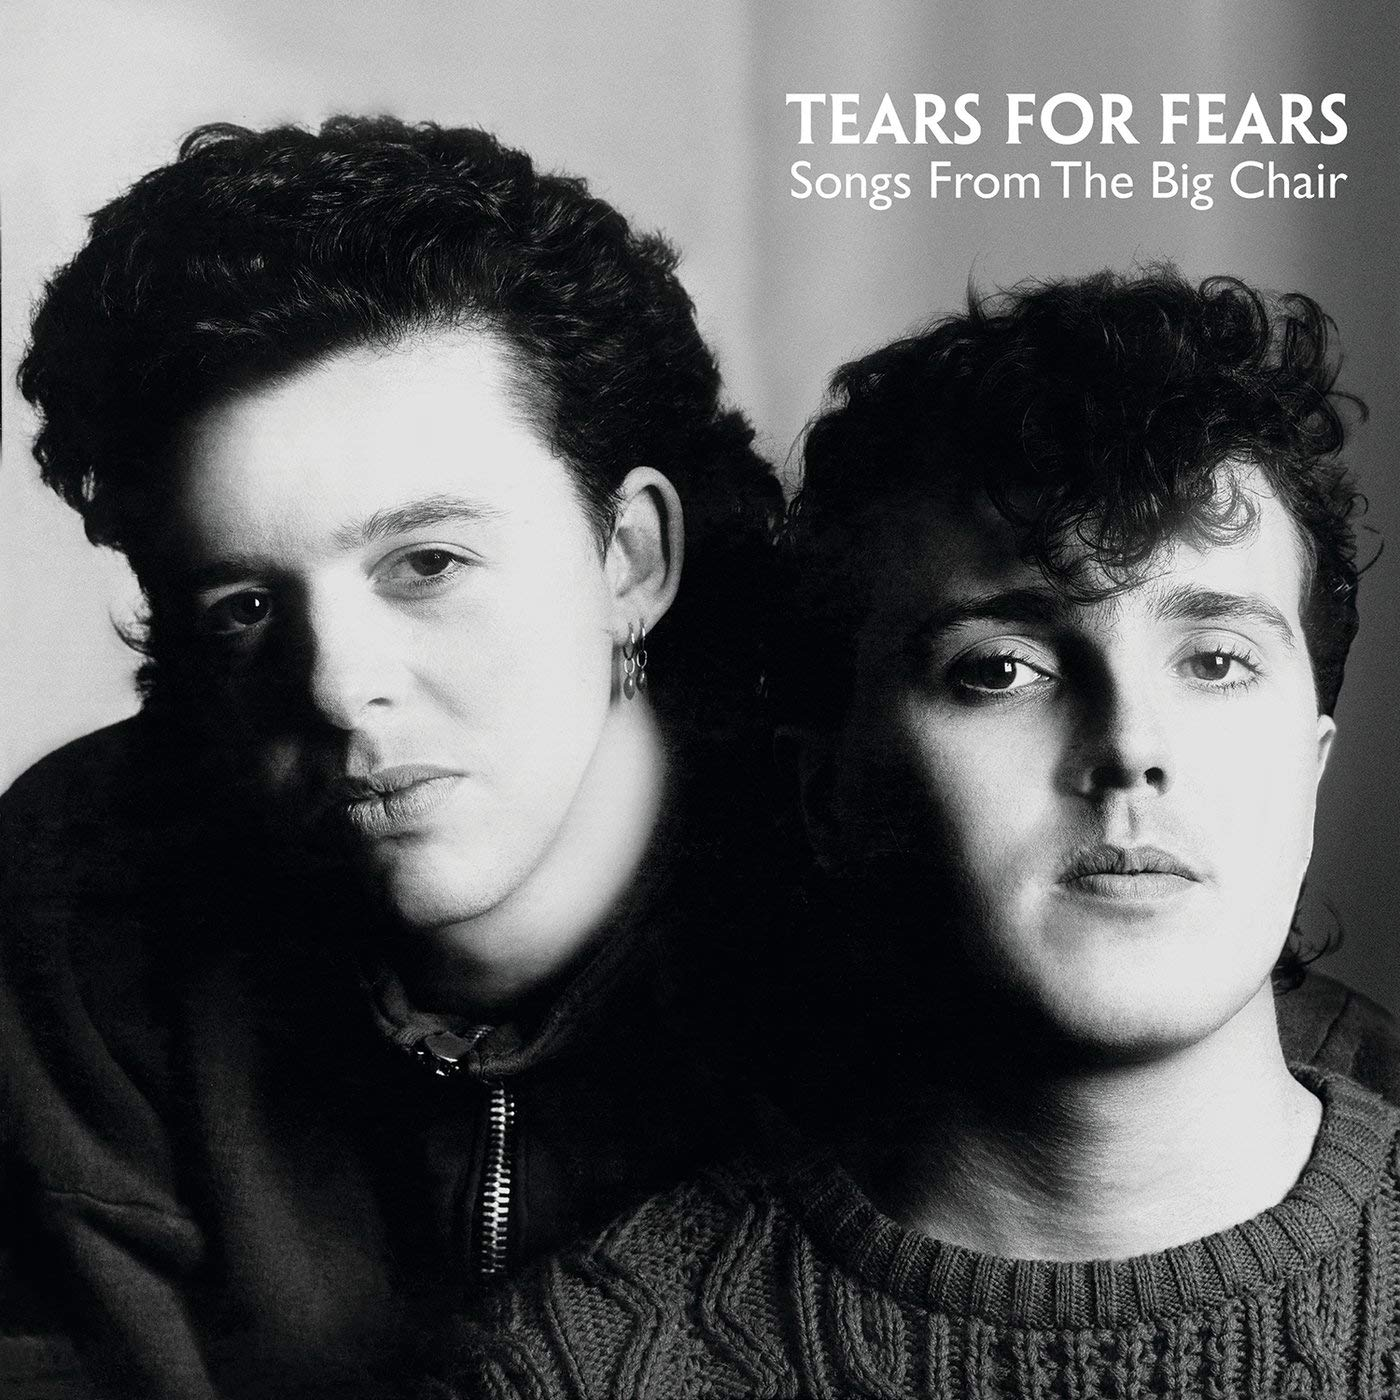 TEARS FOR FEARS SONGS FROM